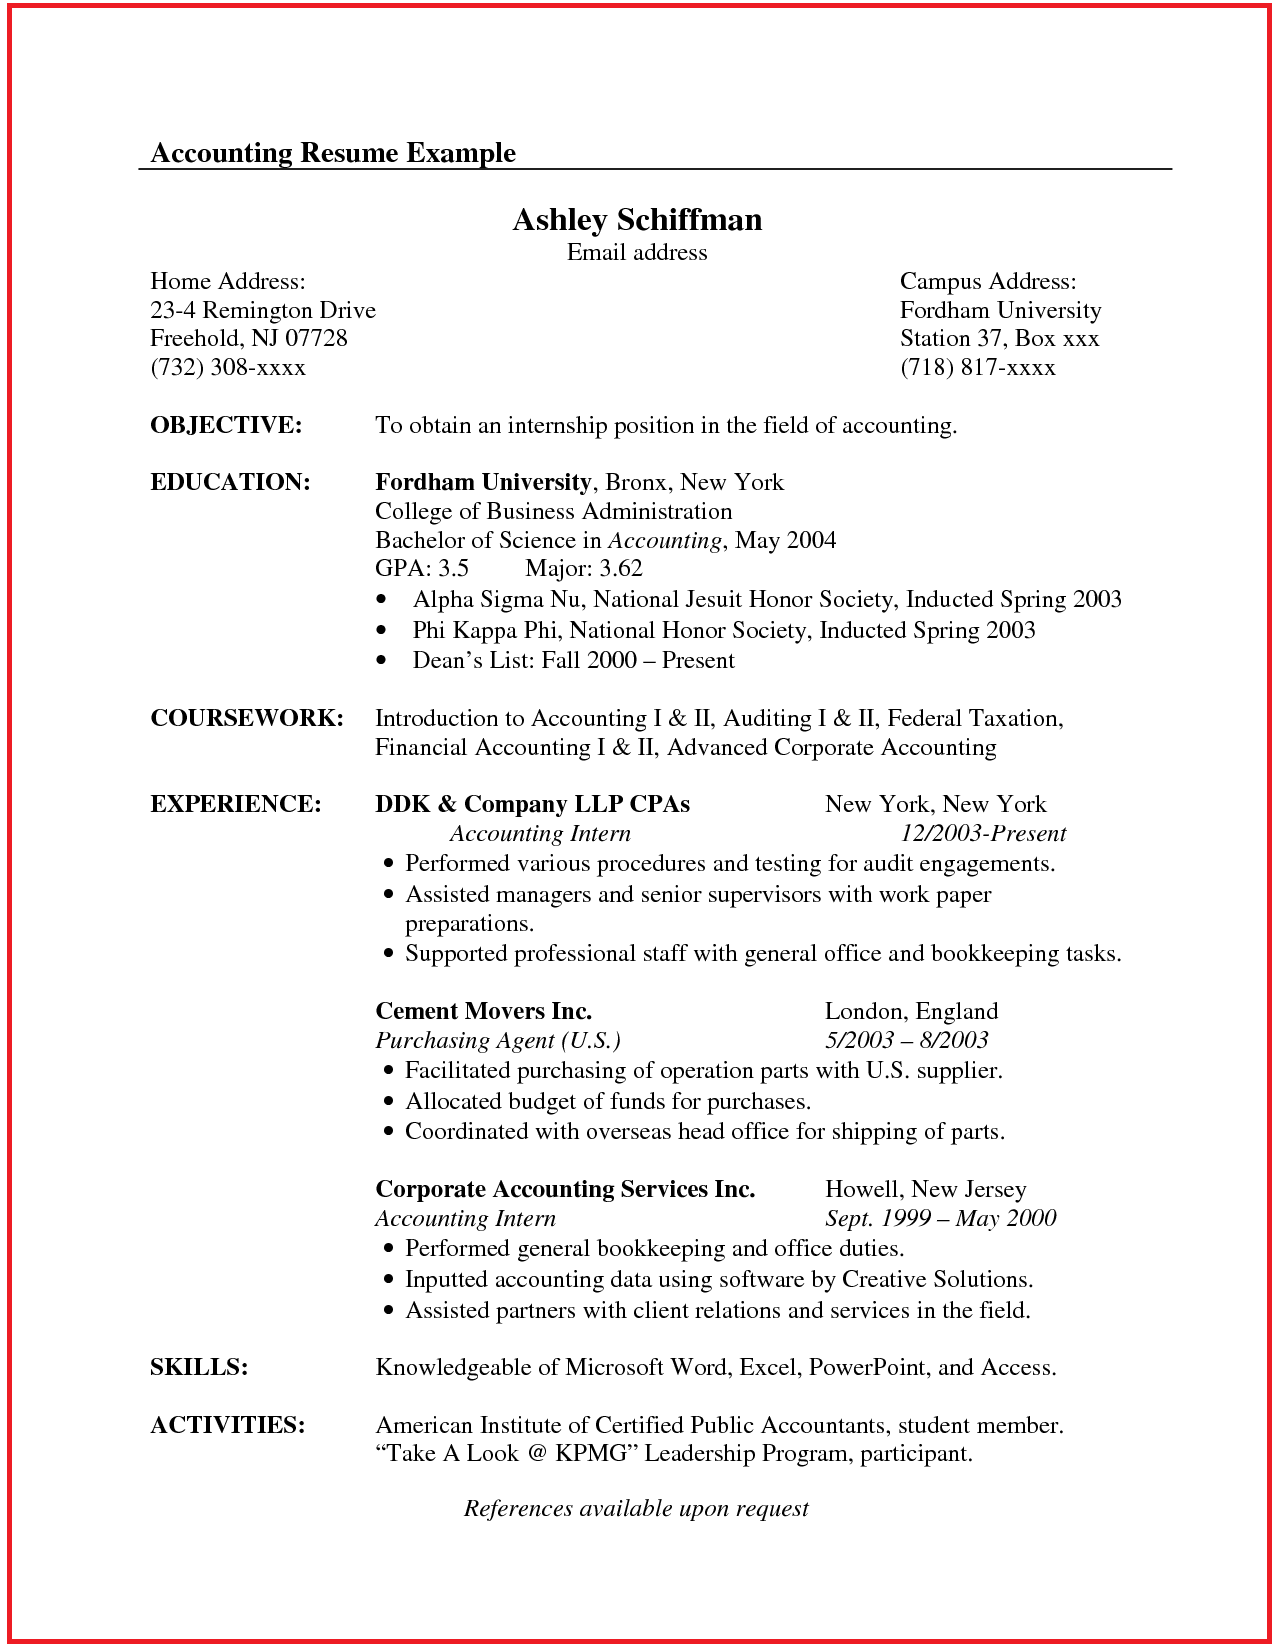 accountant resume sample canada httpwwwjobresumewebsiteaccountant